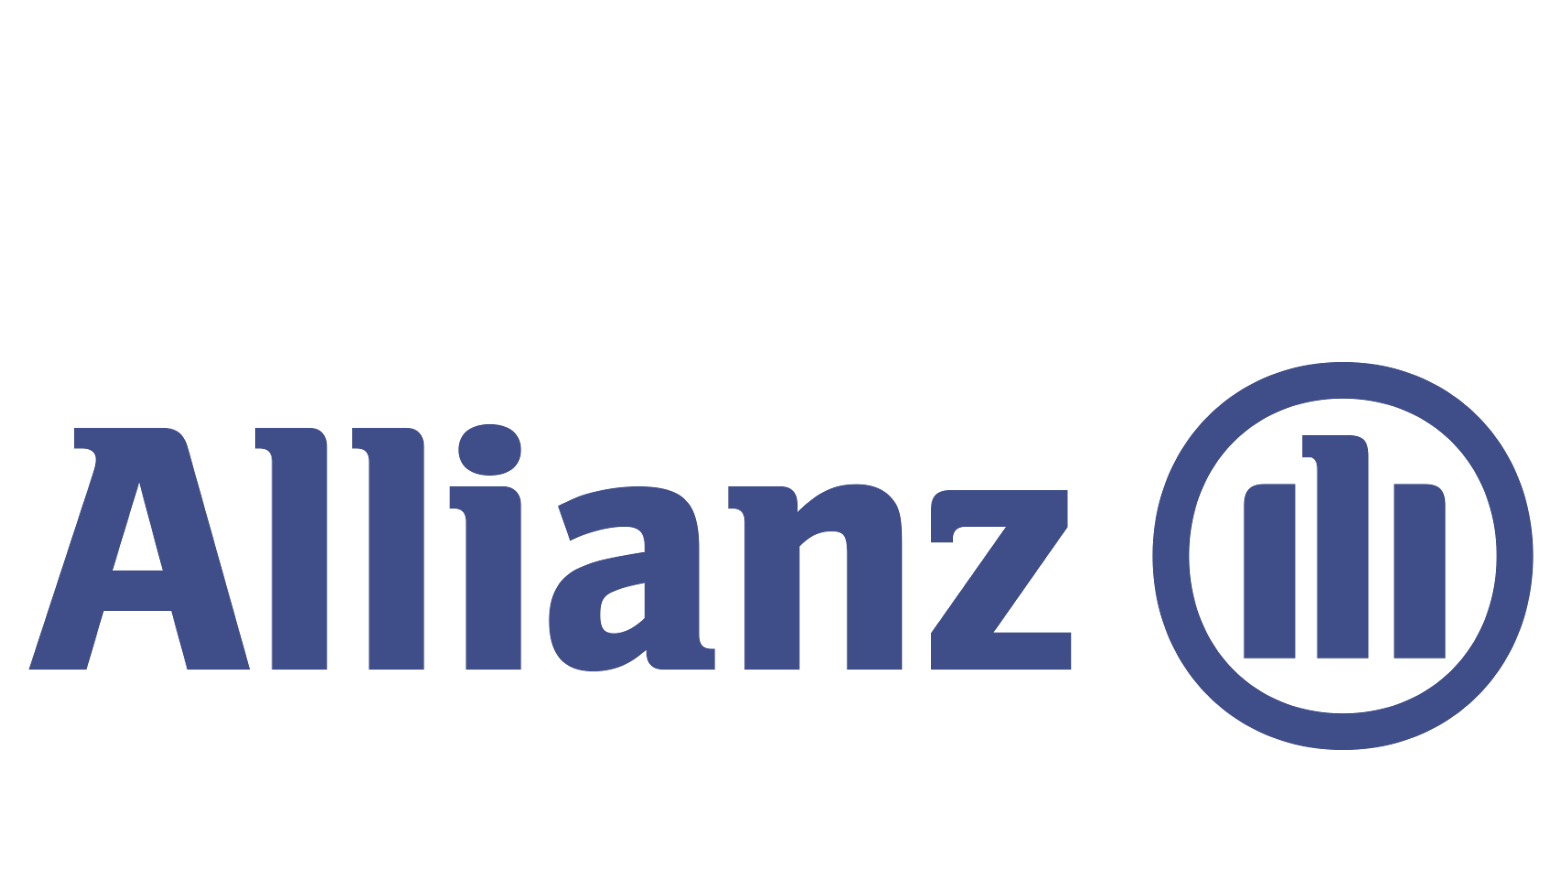 The Allianz Logo